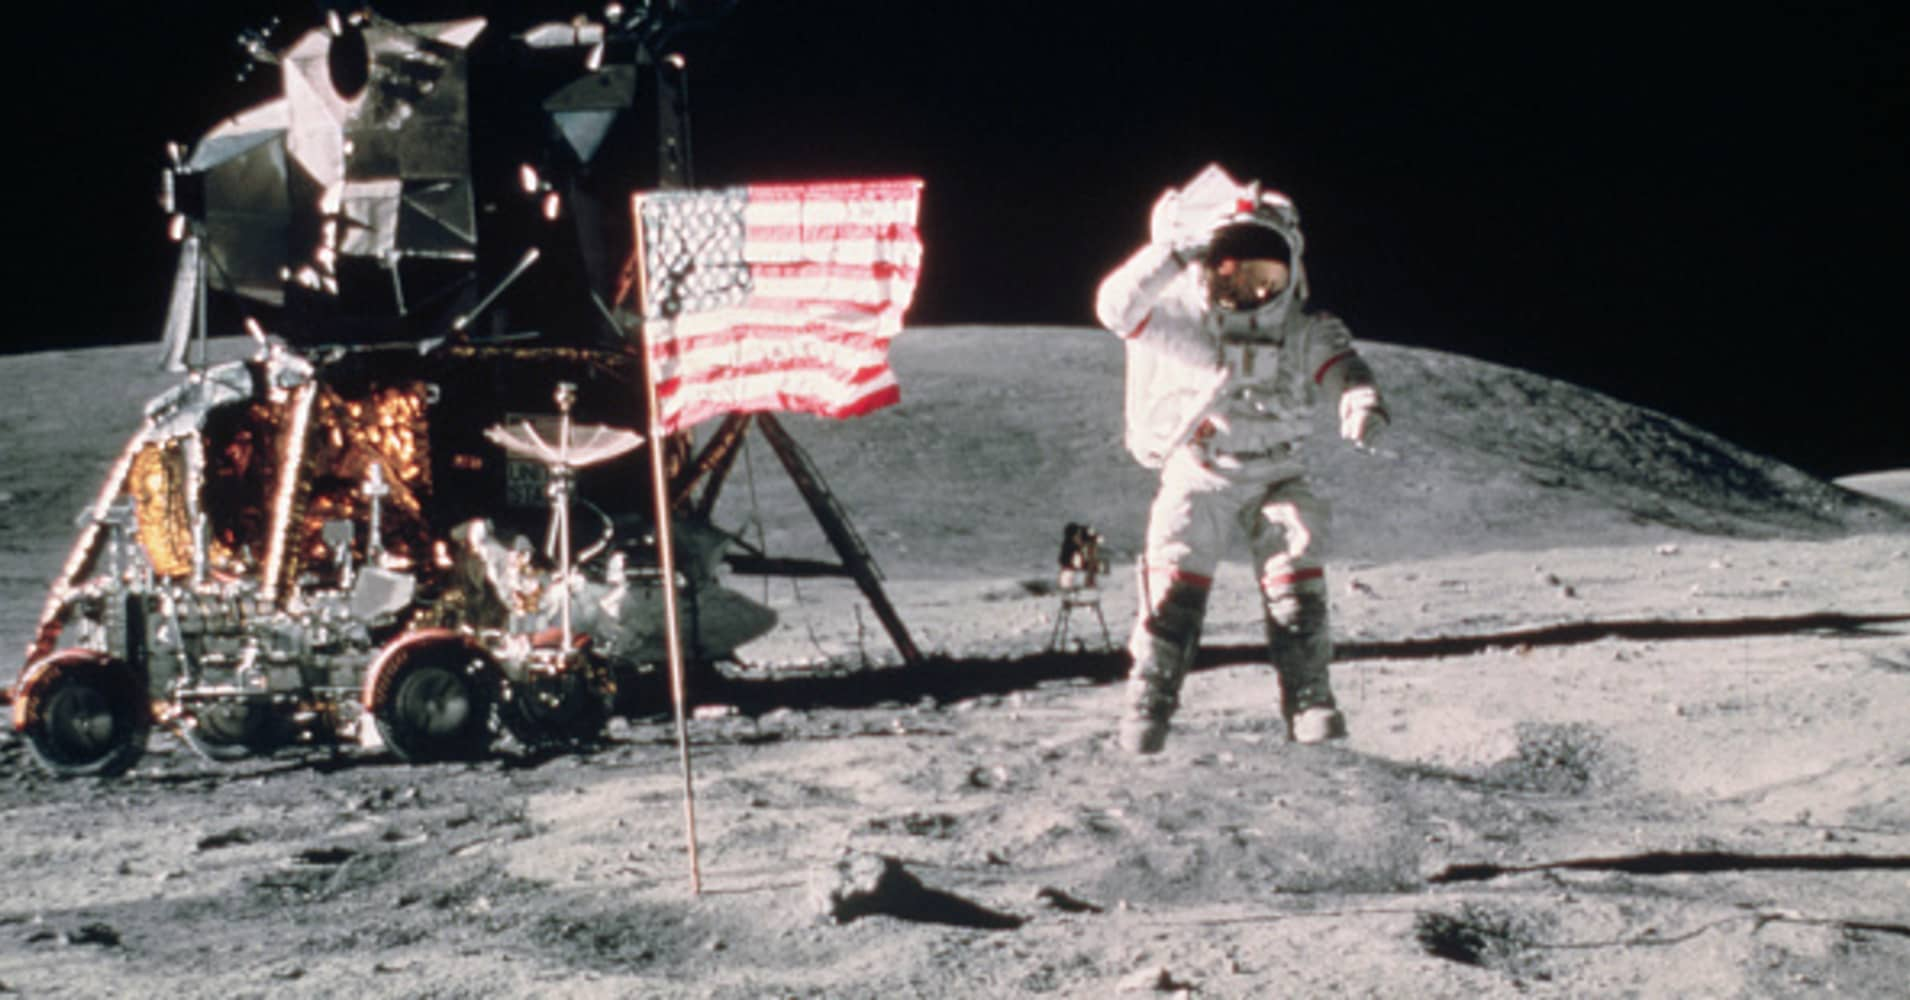 NASA and the White House want billions so companies will compete to build human moon landers